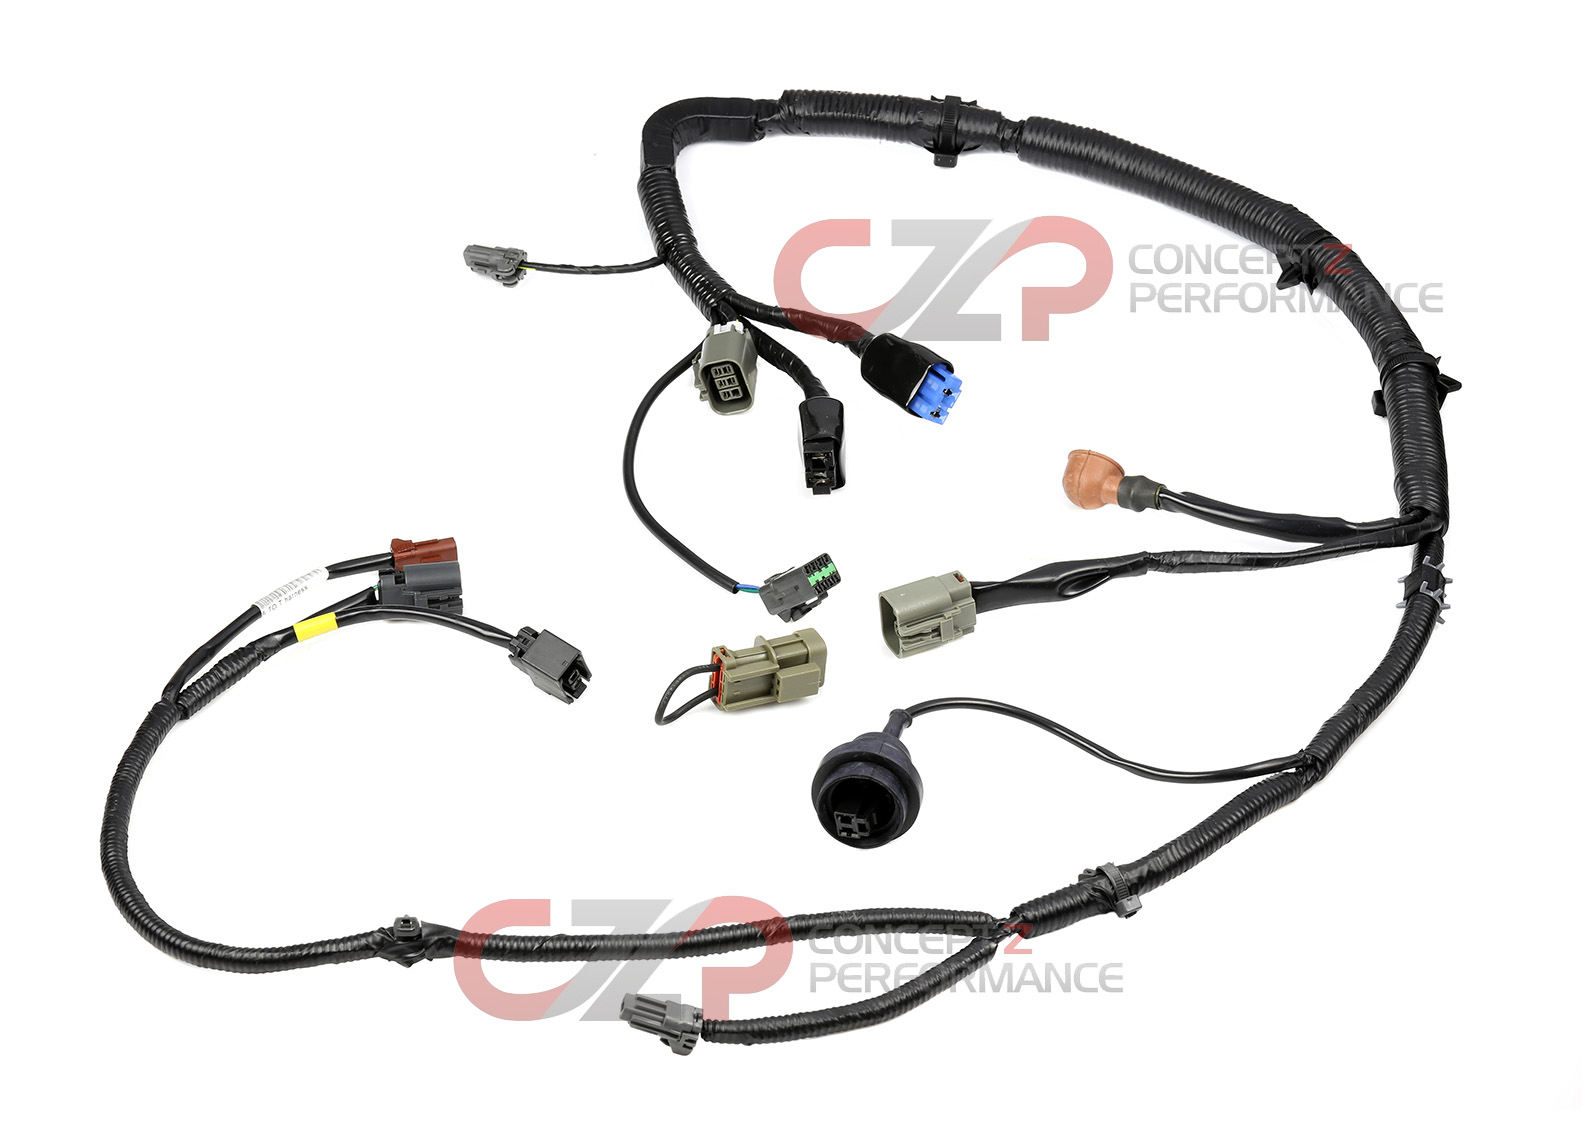 Wiring Specialties Wrs Z32tran Atmt Alternator To Transmission Harness At Gt Gt Mt Conversion